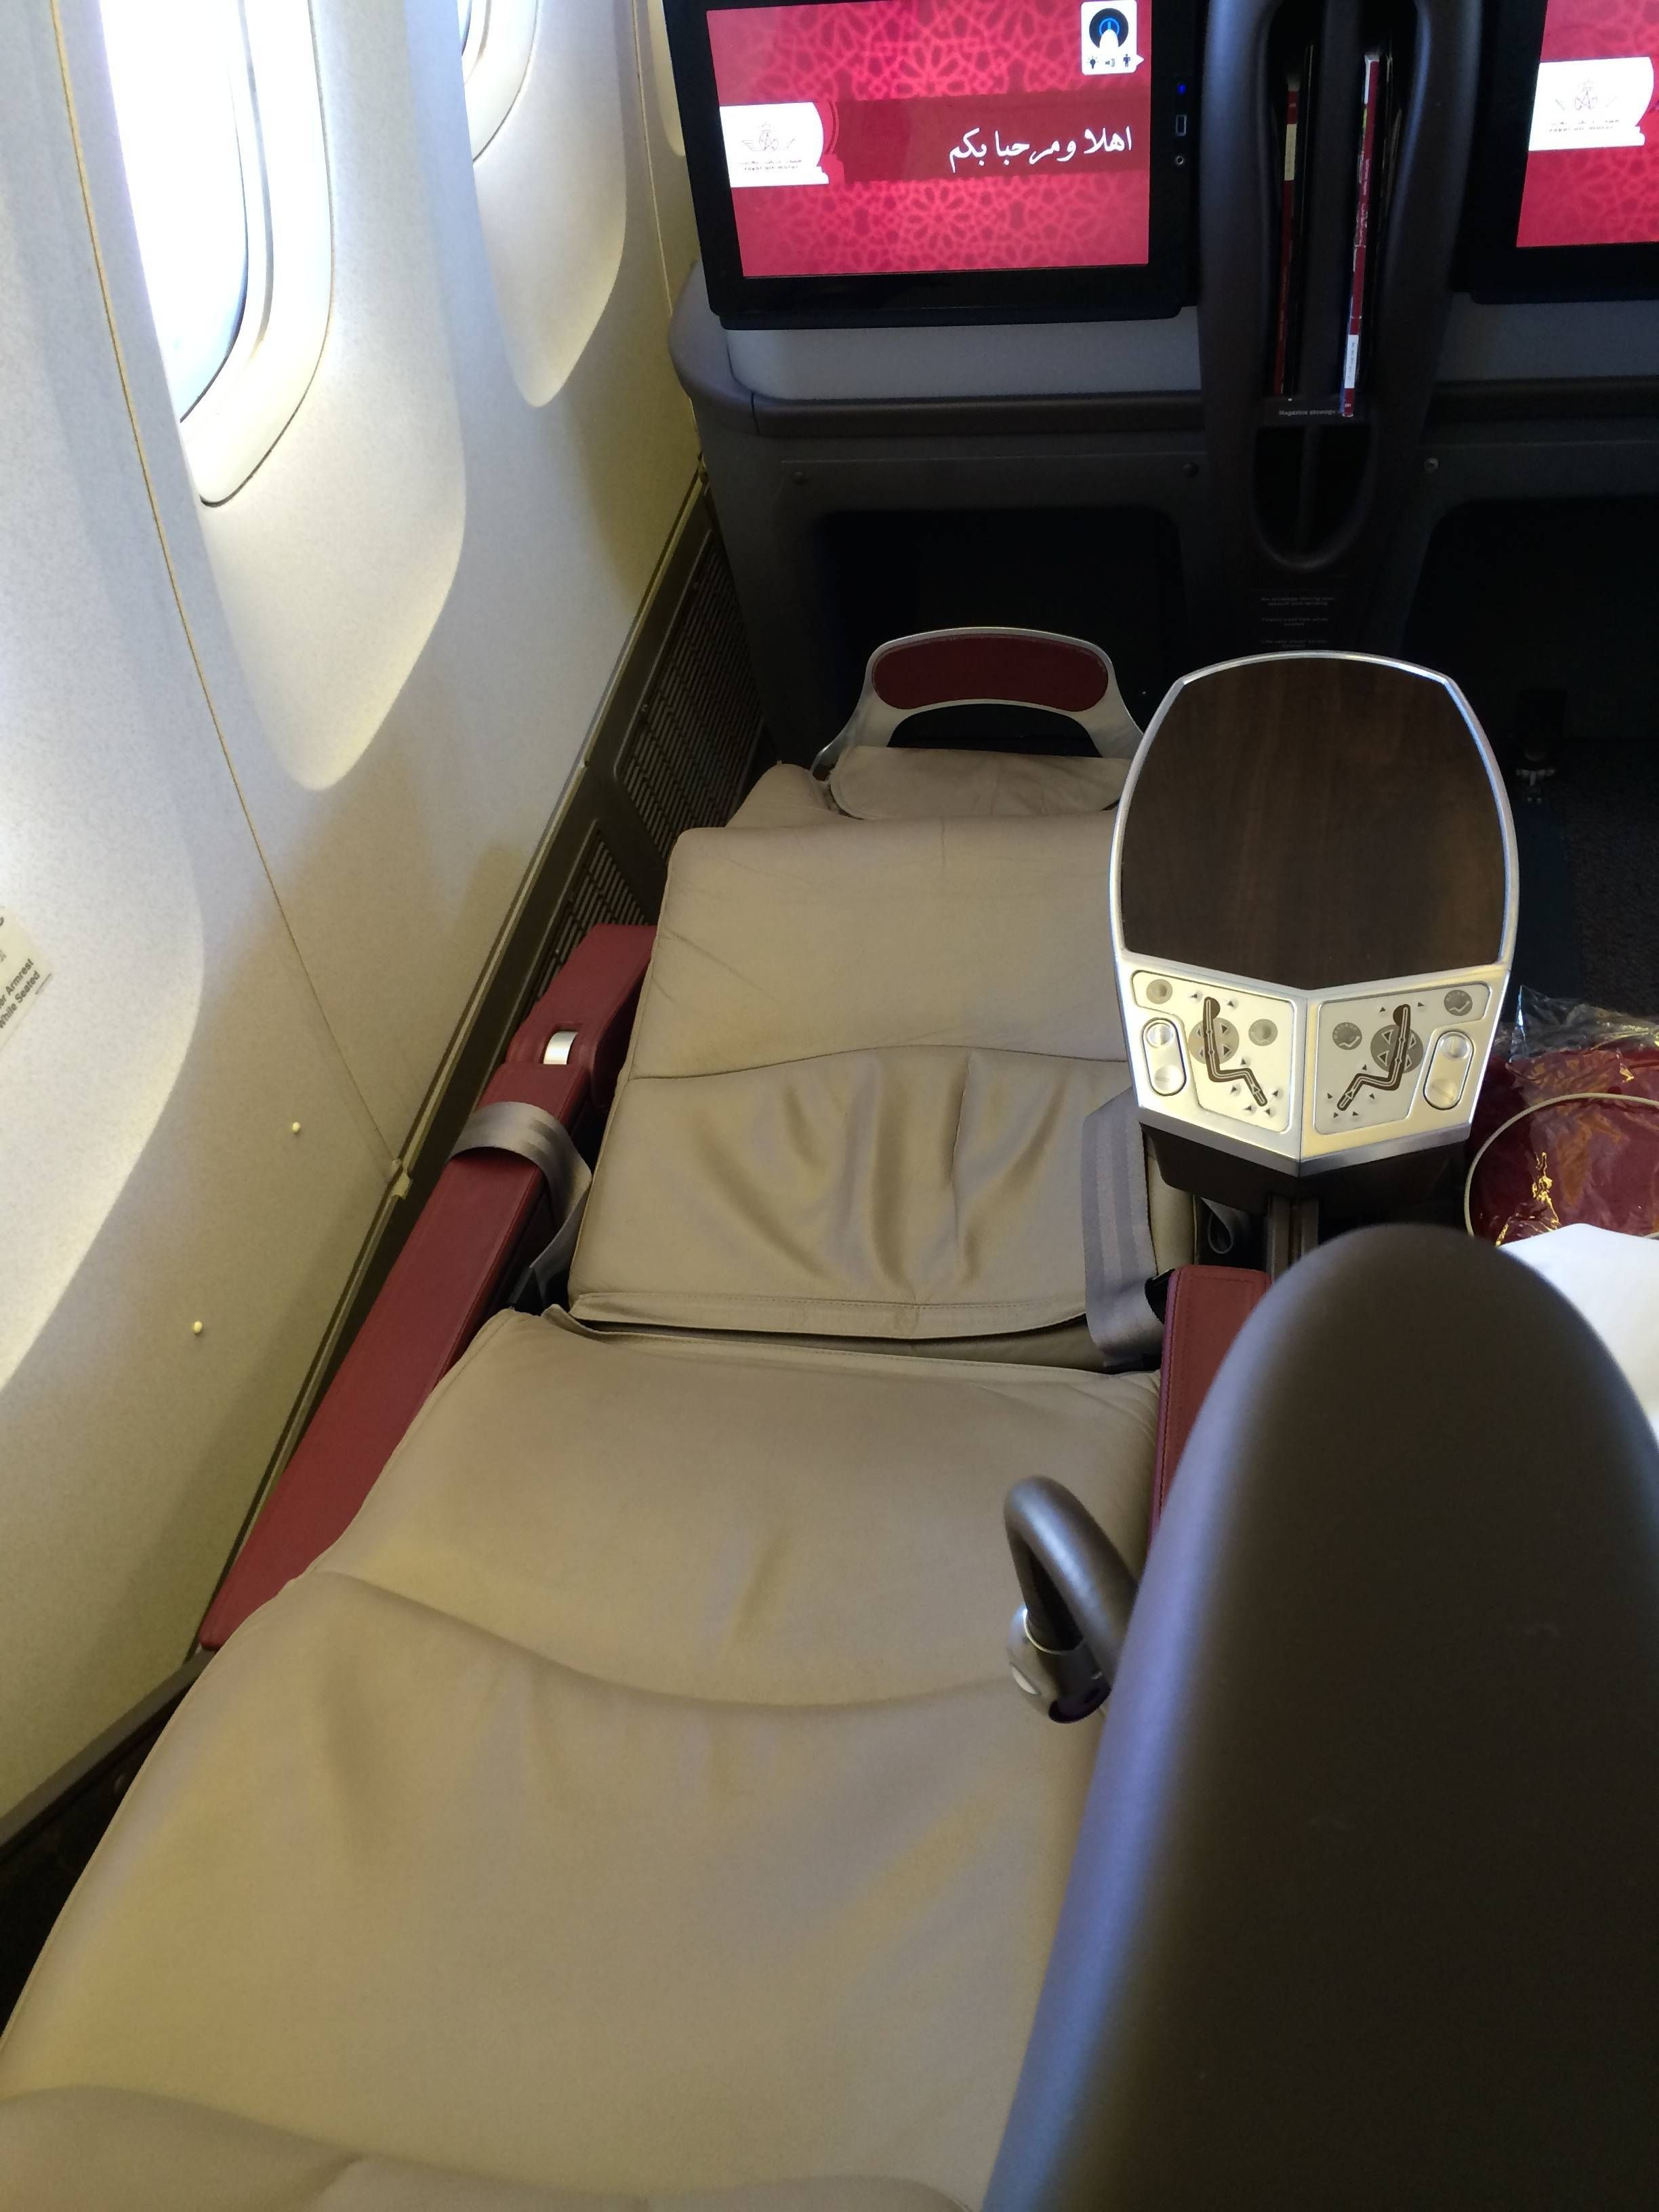 royal air maroc b767 business class passageirodeprimeira